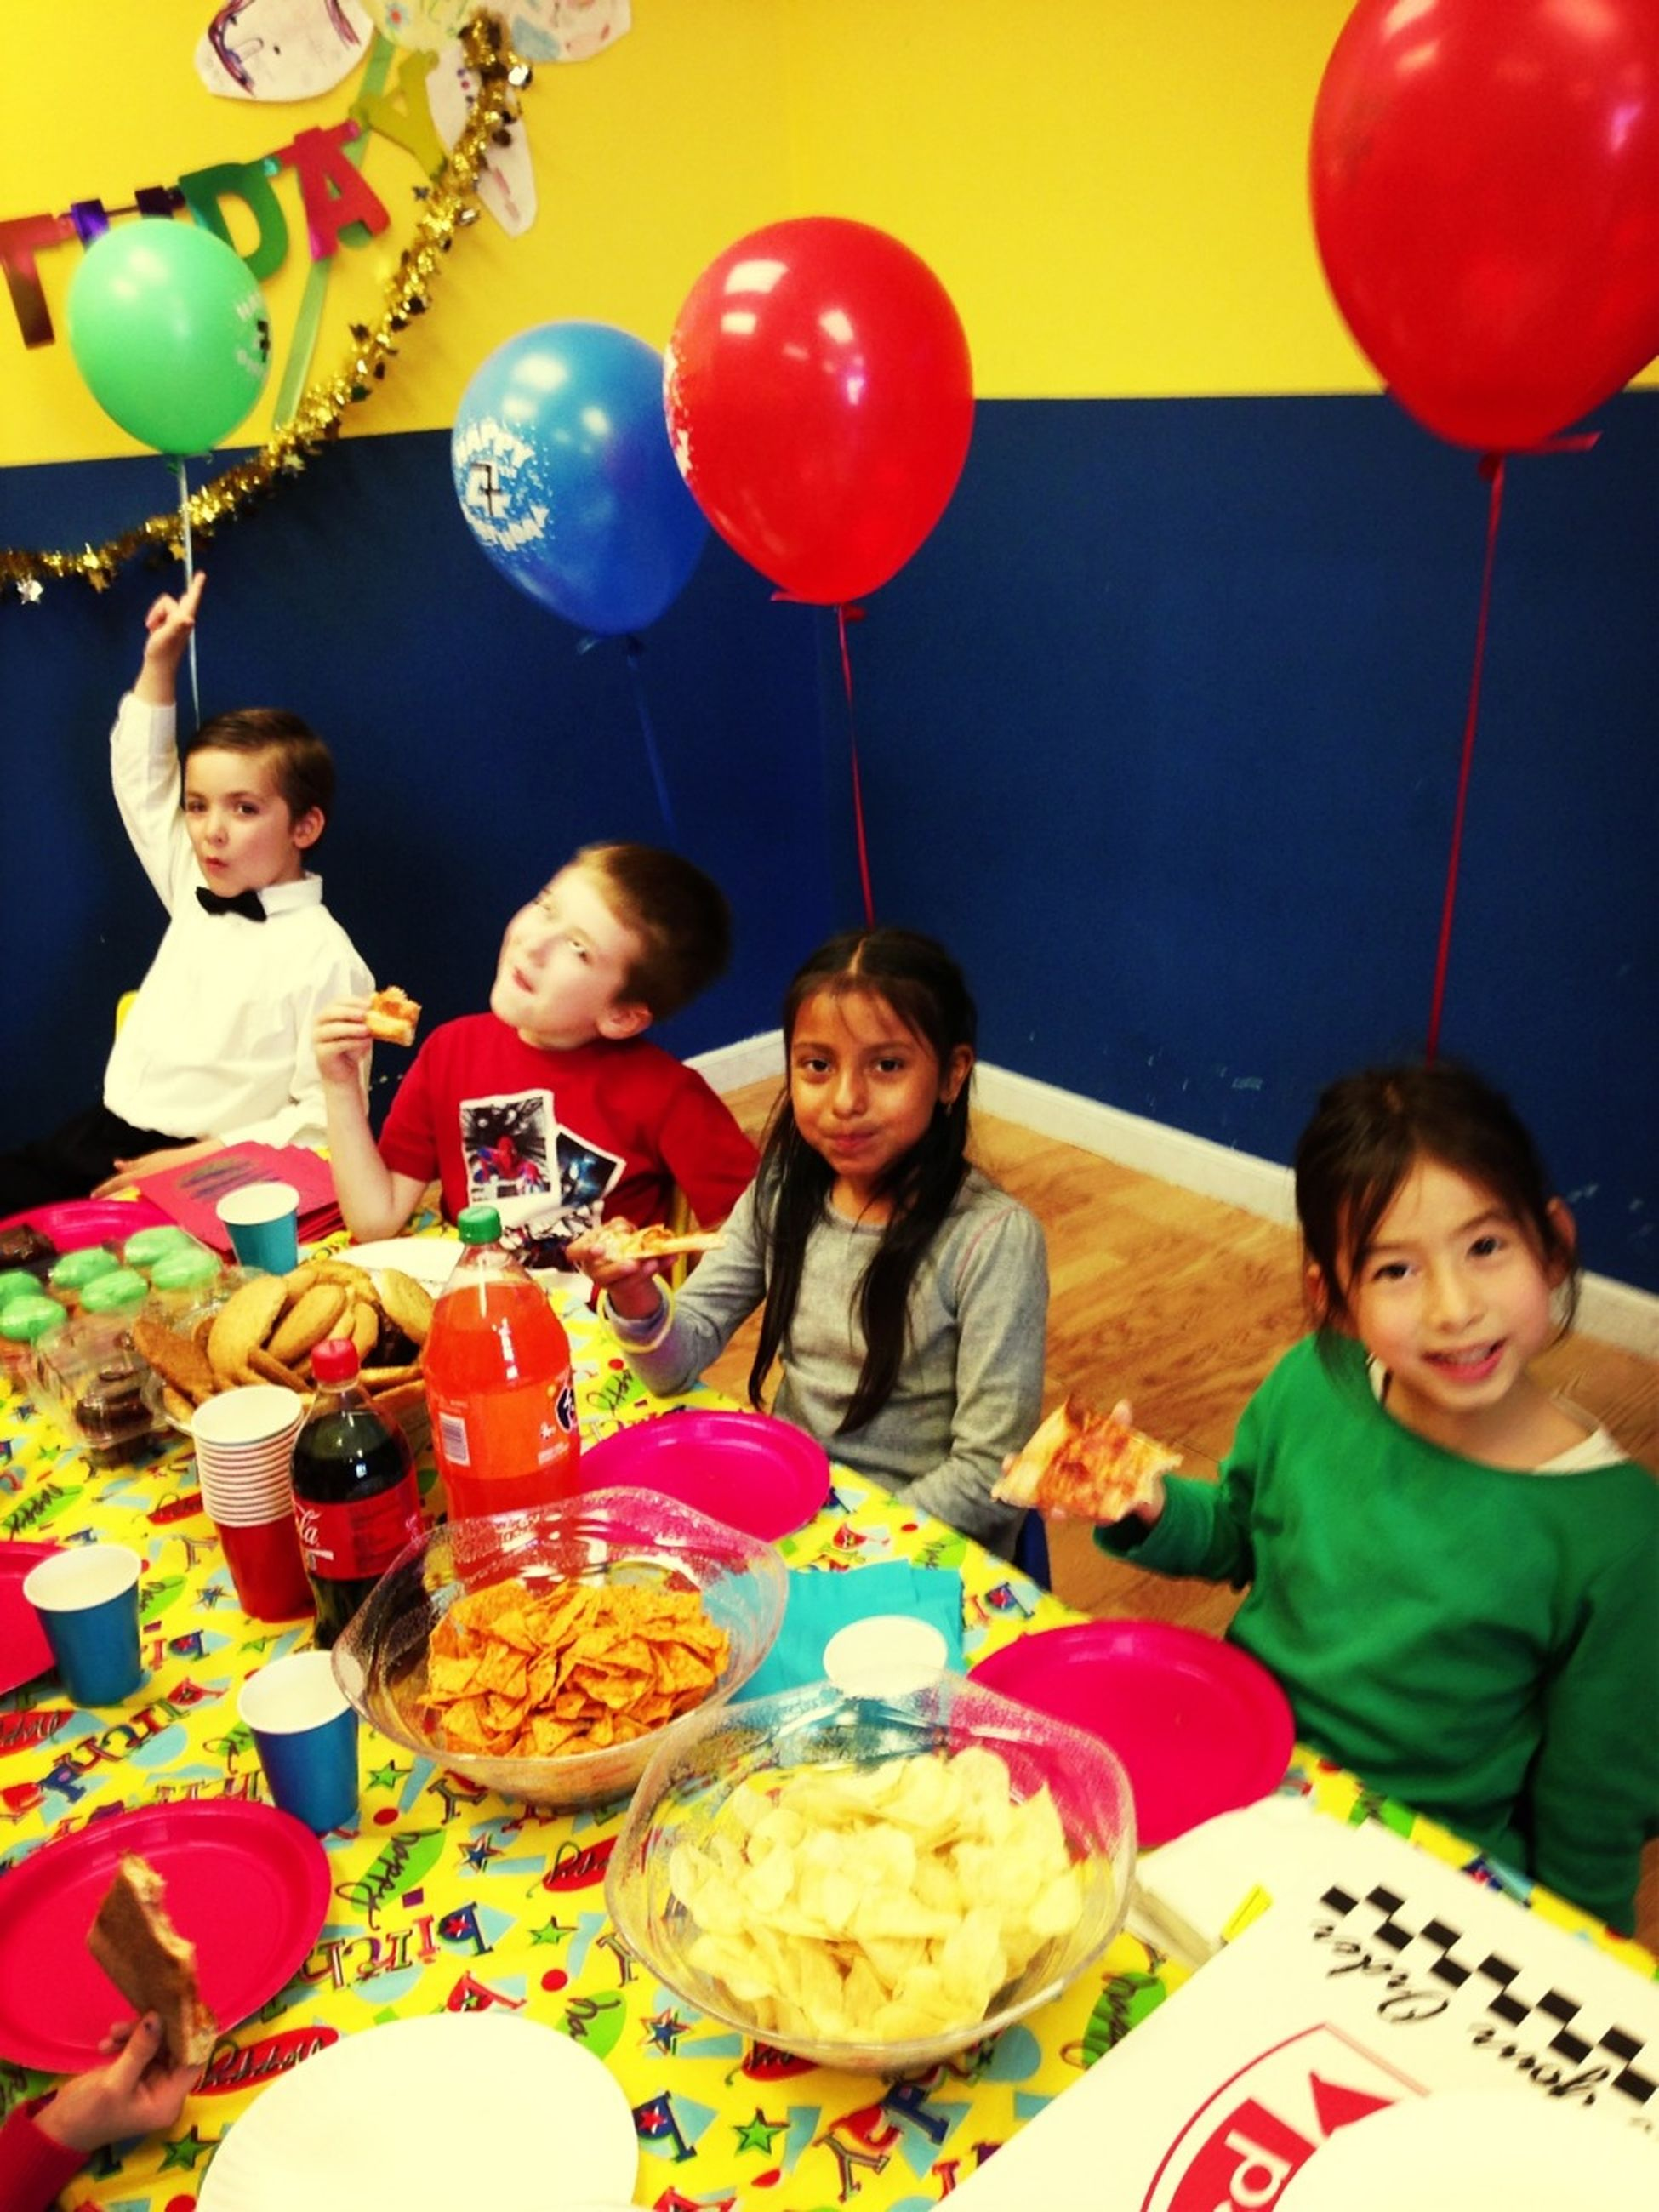 childhood, indoors, celebration, food and drink, leisure activity, elementary age, happiness, balloon, lifestyles, fun, person, food, enjoyment, smiling, togetherness, girls, boys, multi colored, looking at camera